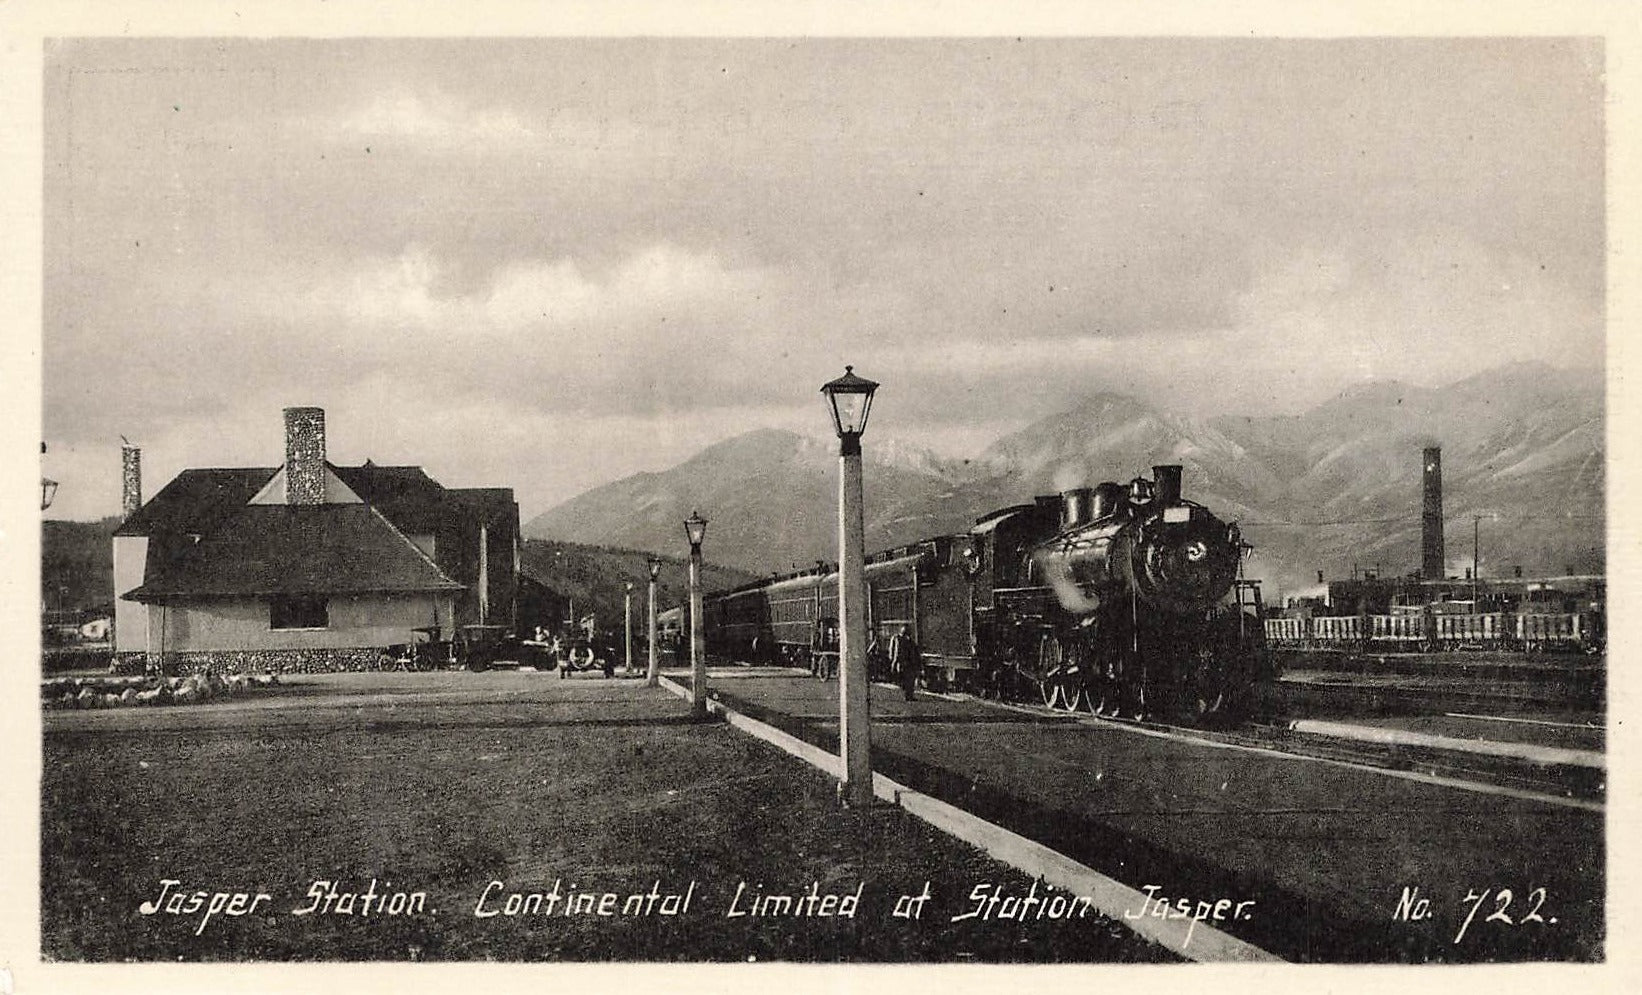 Jasper, AB. Postcard. Continental Limited Locomotive At Jasper Railway Station. Canada